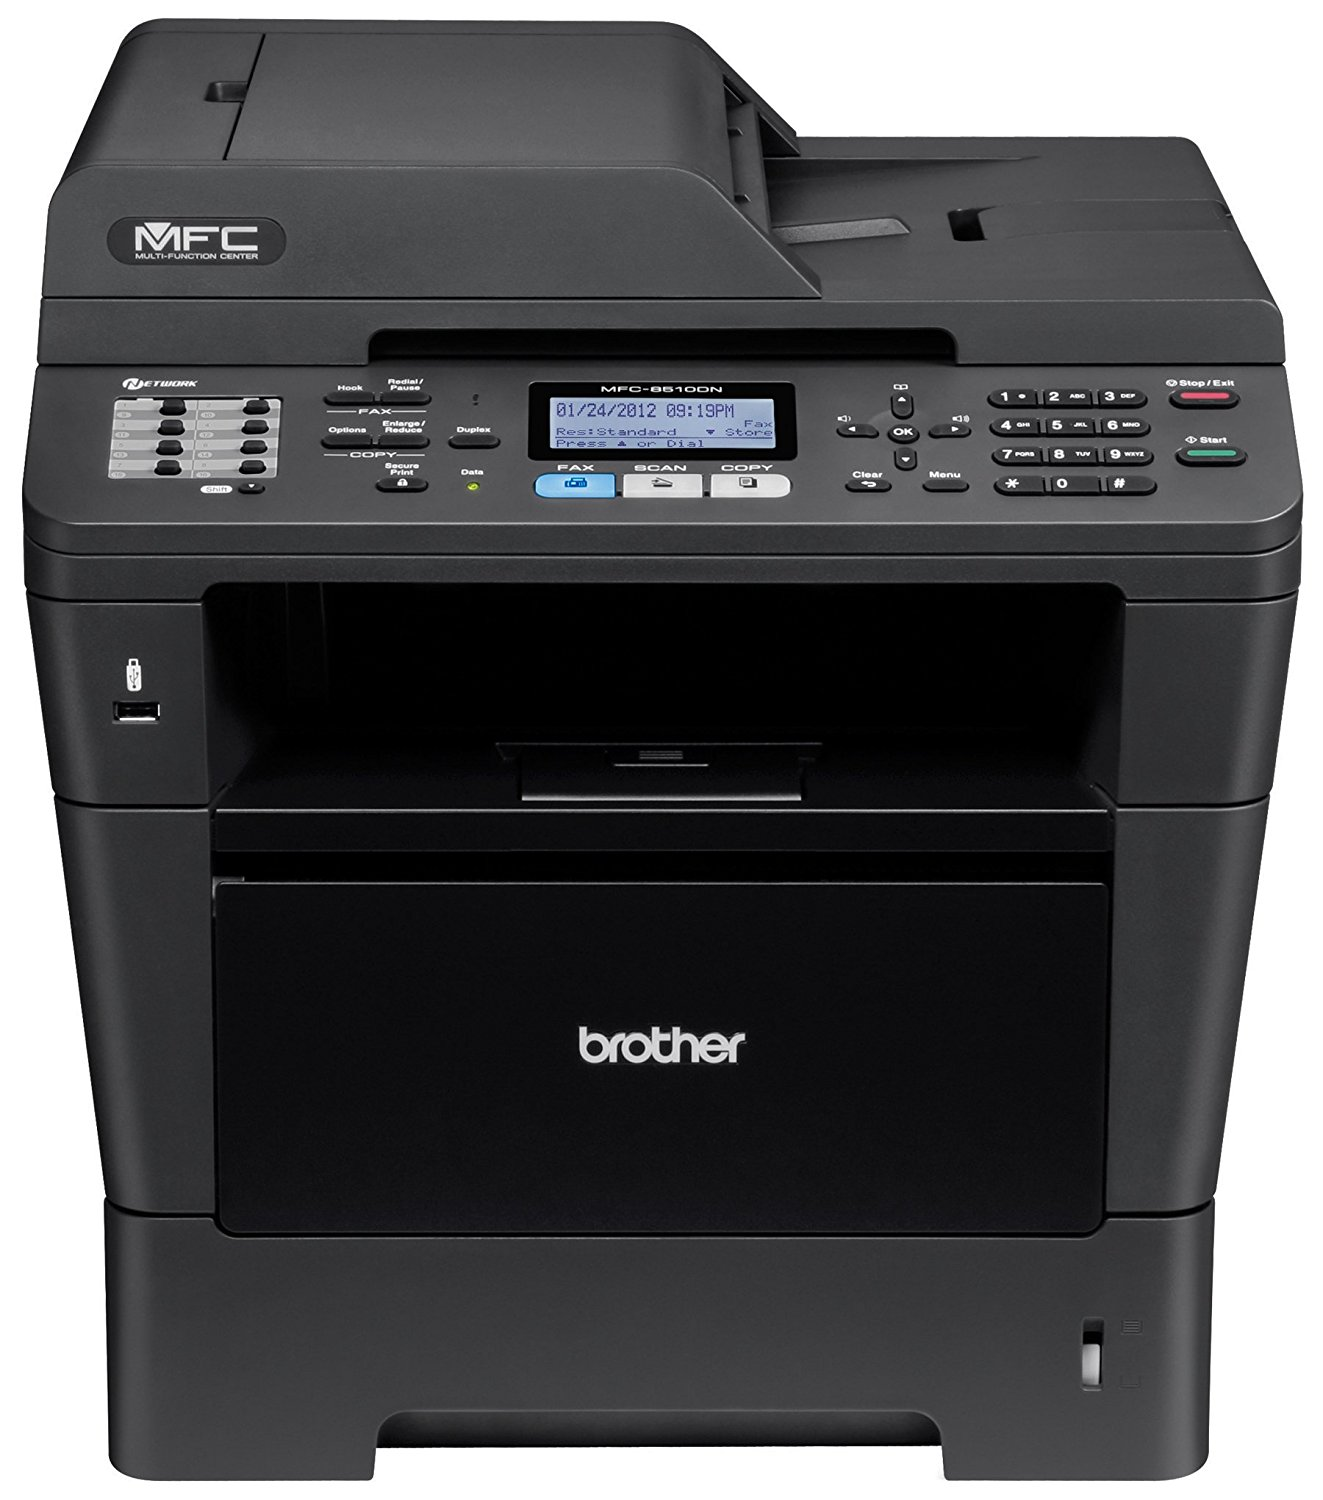 Buy Brother Duplex Document Scanner Ads 2100 Price Of